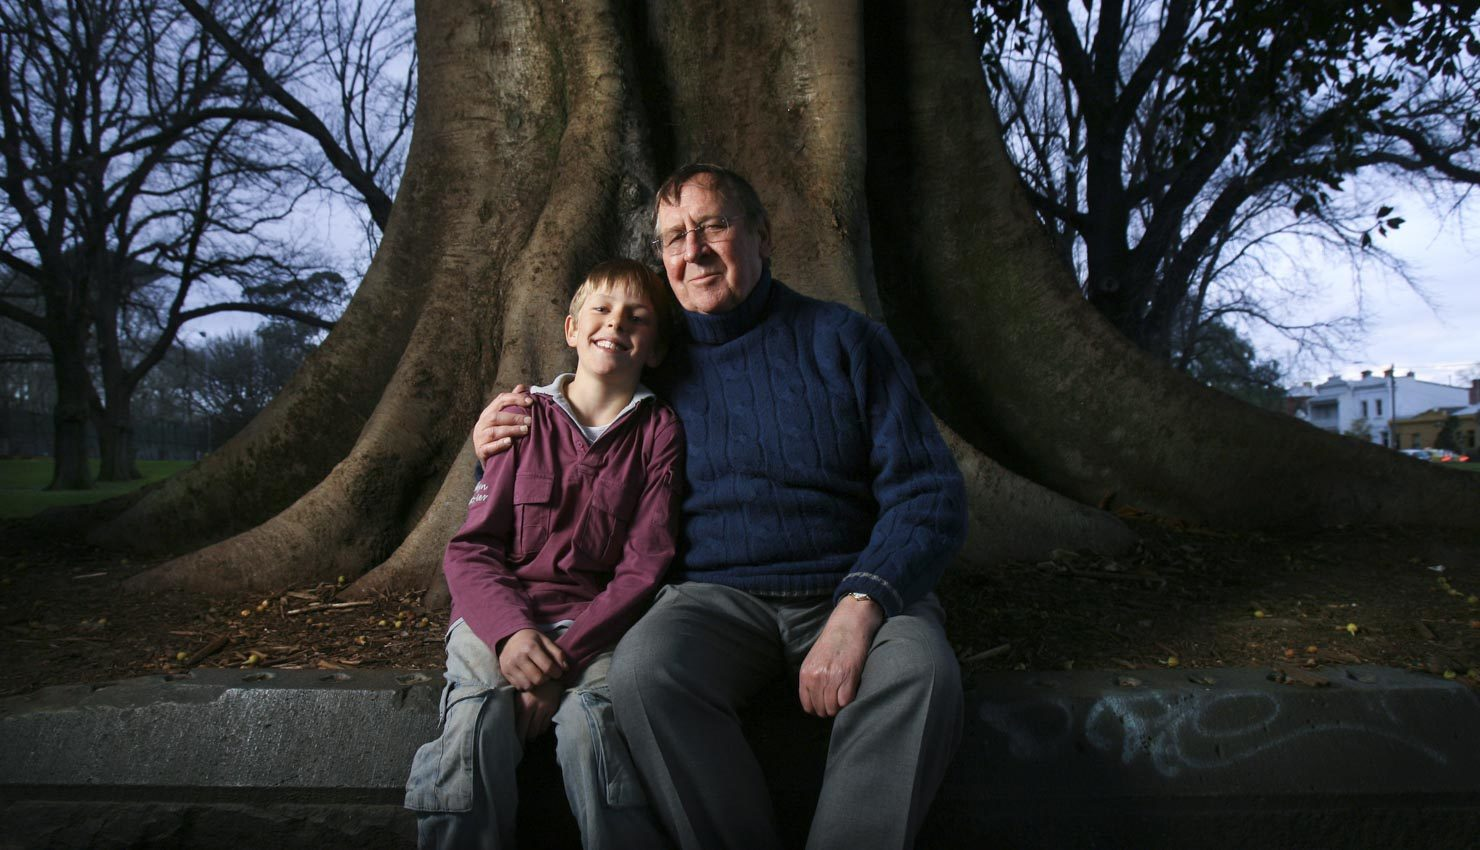 A father & son in front of a large oak tree